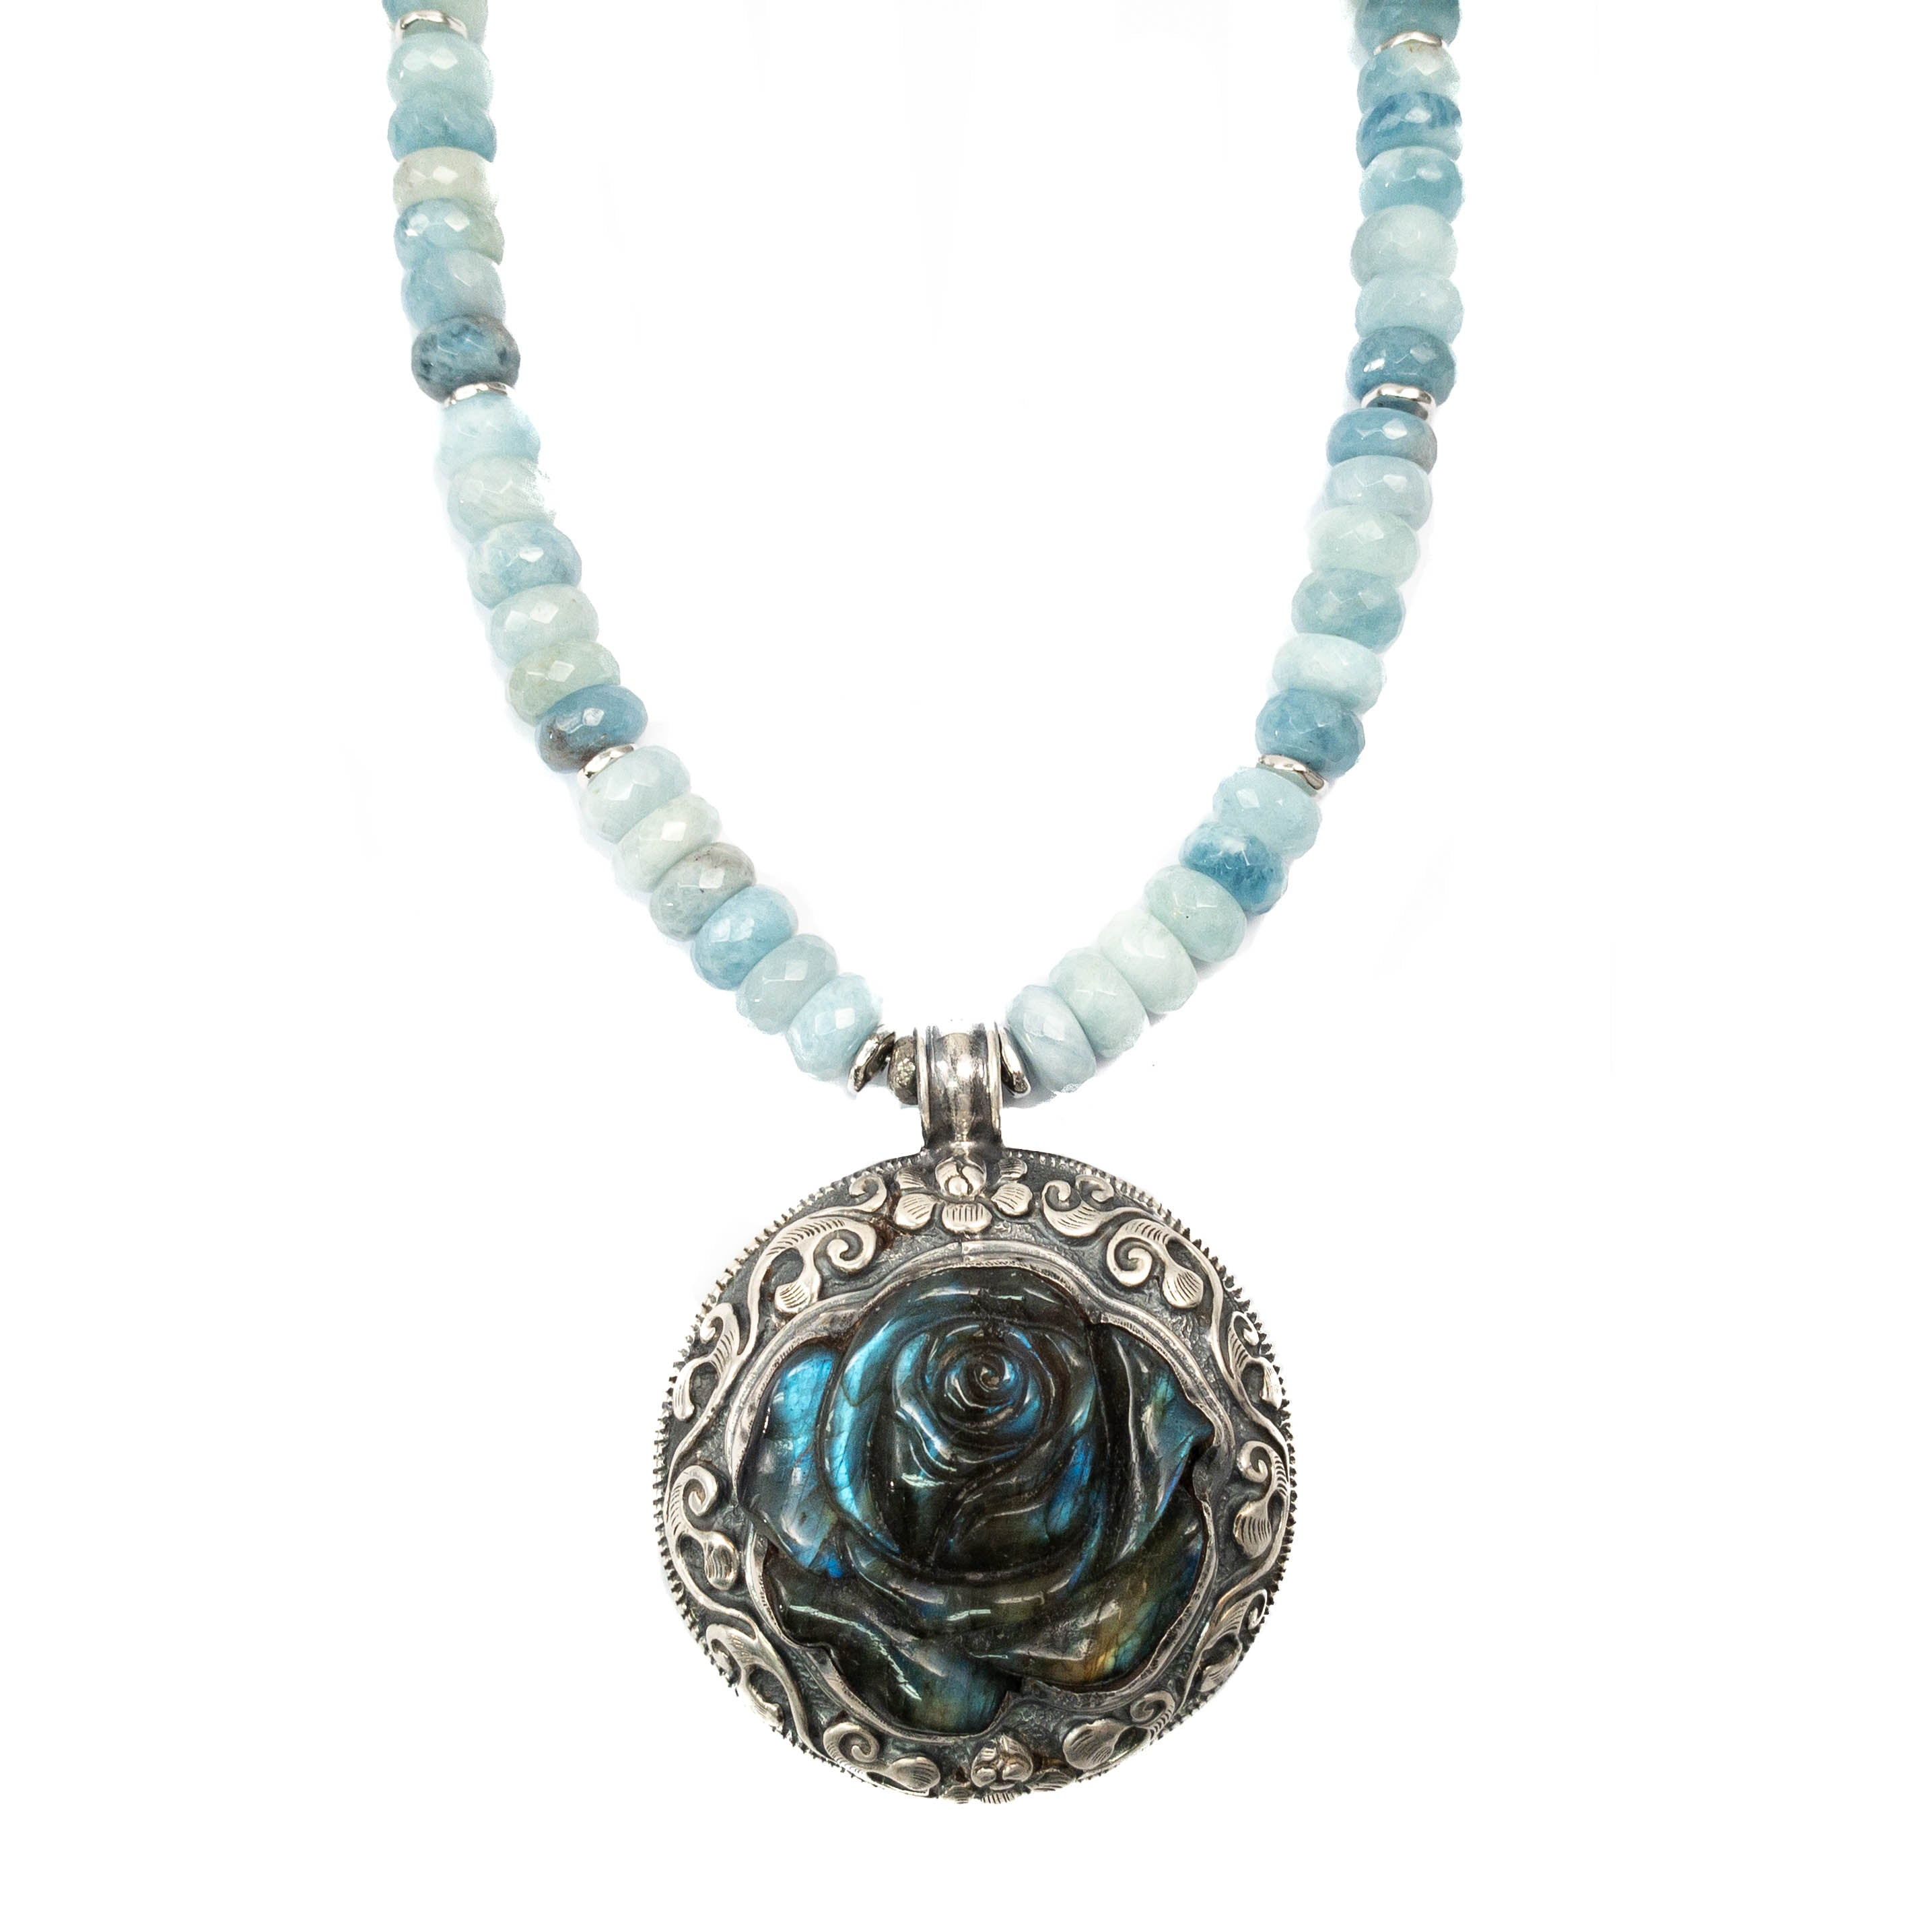 Sterling Silver Nepali Repousse Labradorite Rose Pendant on Aquamarine Necklace